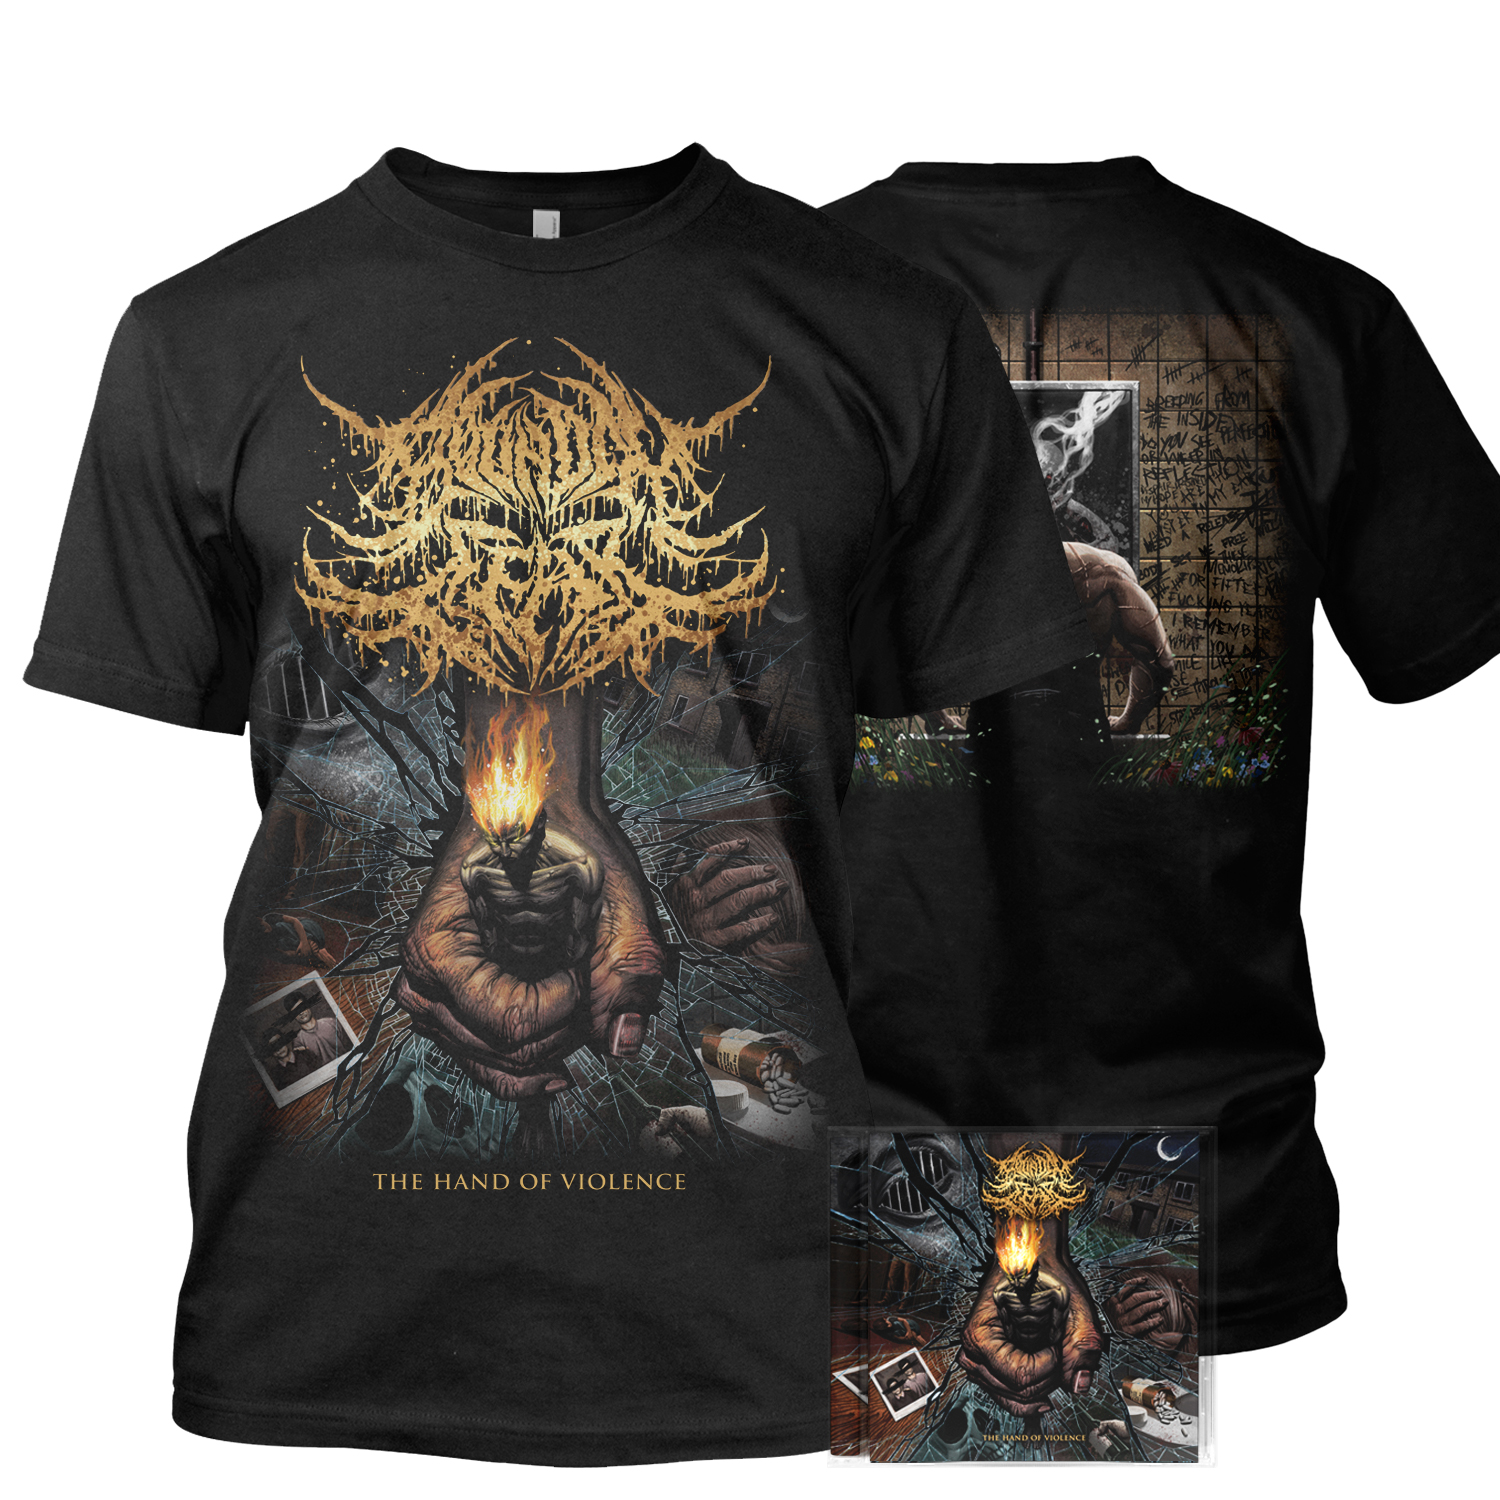 The Hand of Violence CD + Tee Bundle